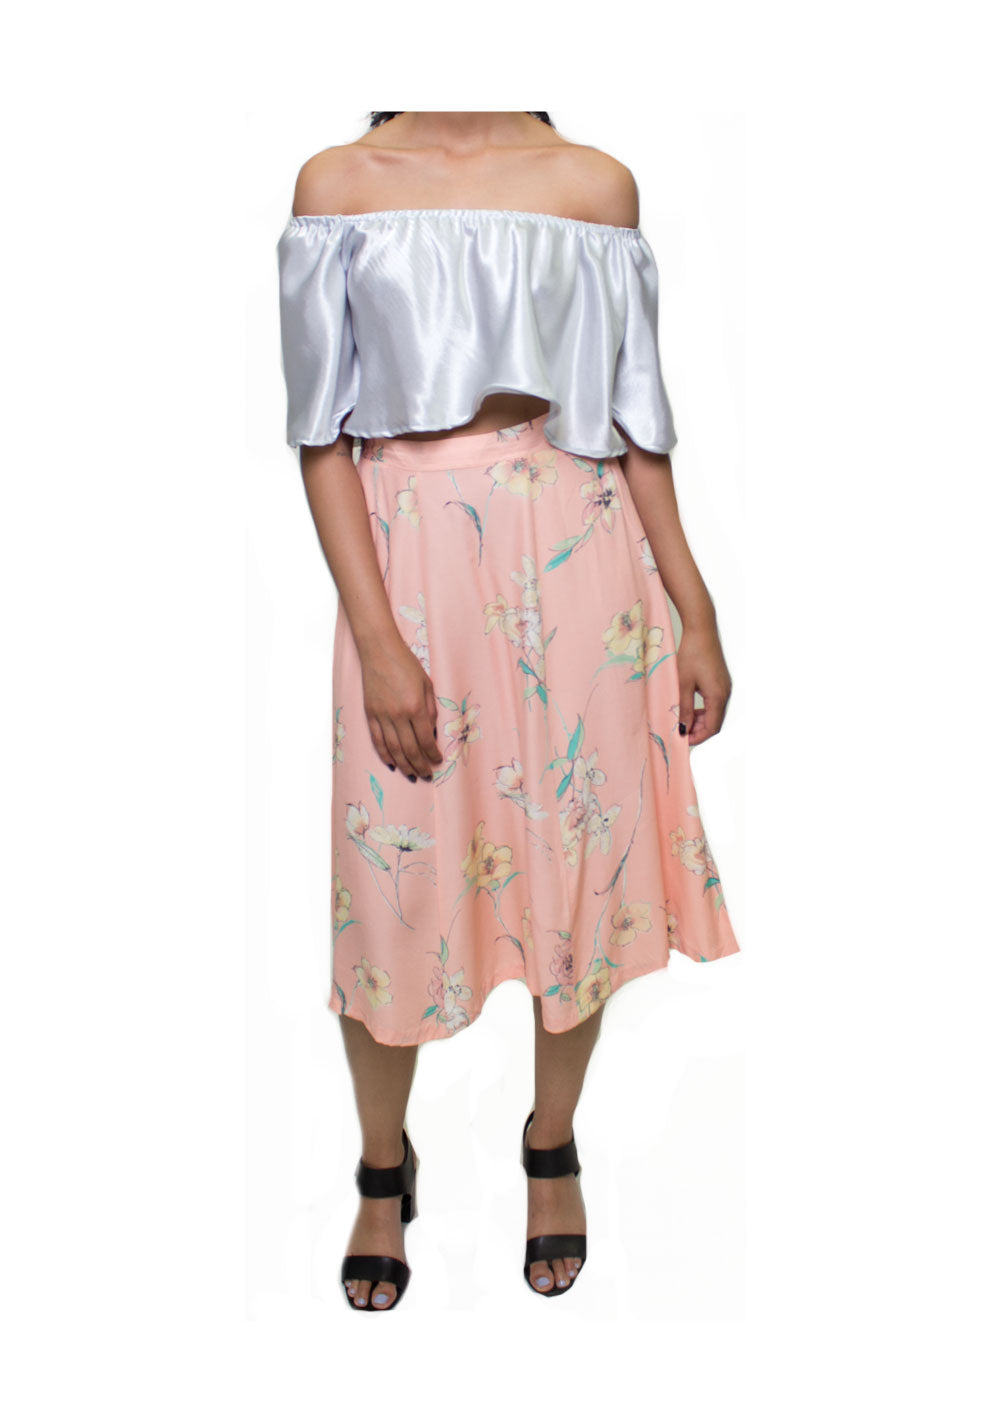 Bria Peach Floral  Skirt